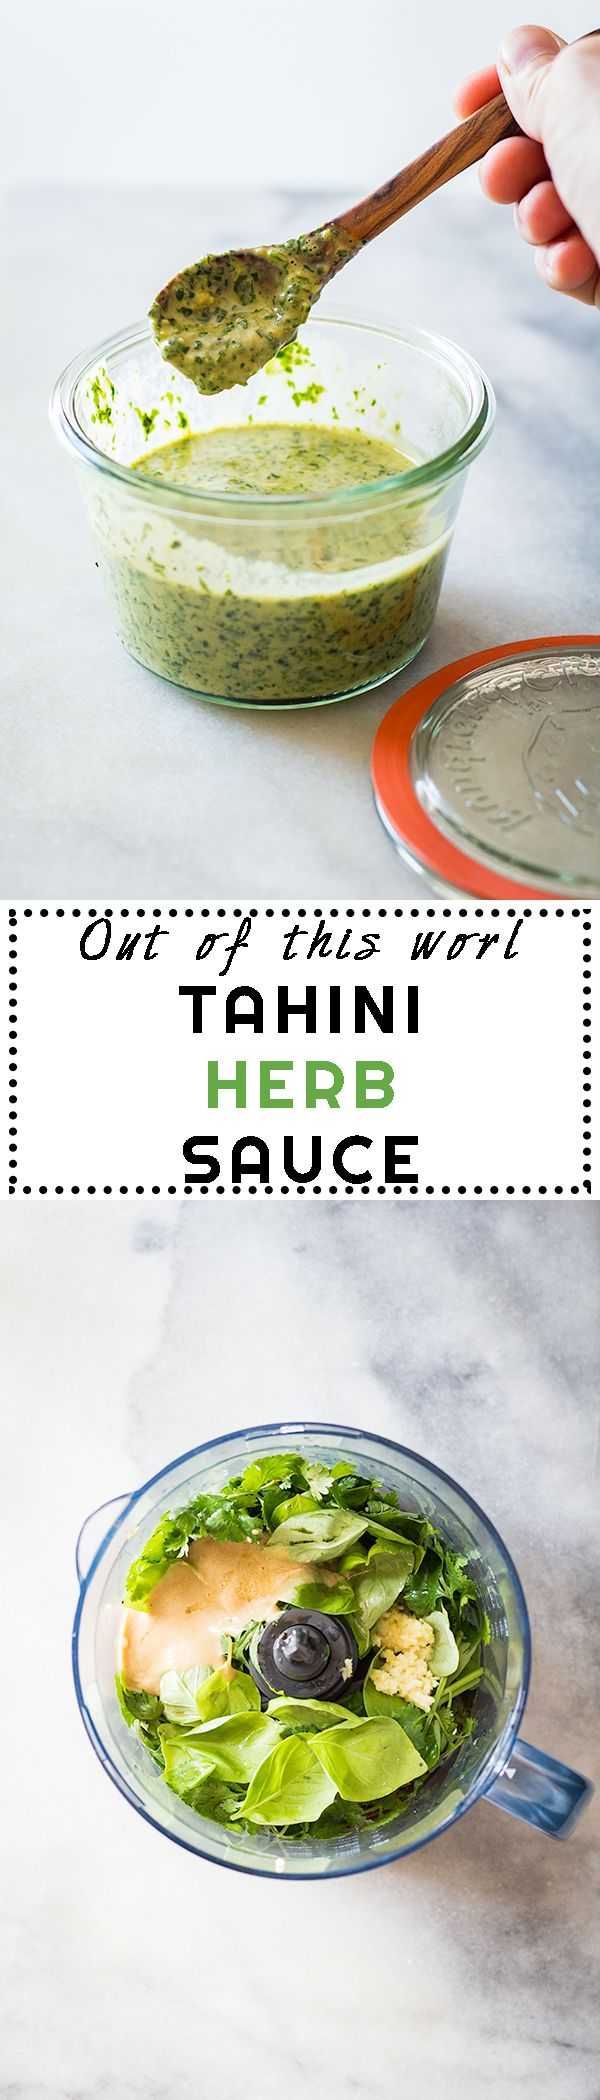 465 best Dip and Sauce Recipes images on Pinterest | Cooking food ...